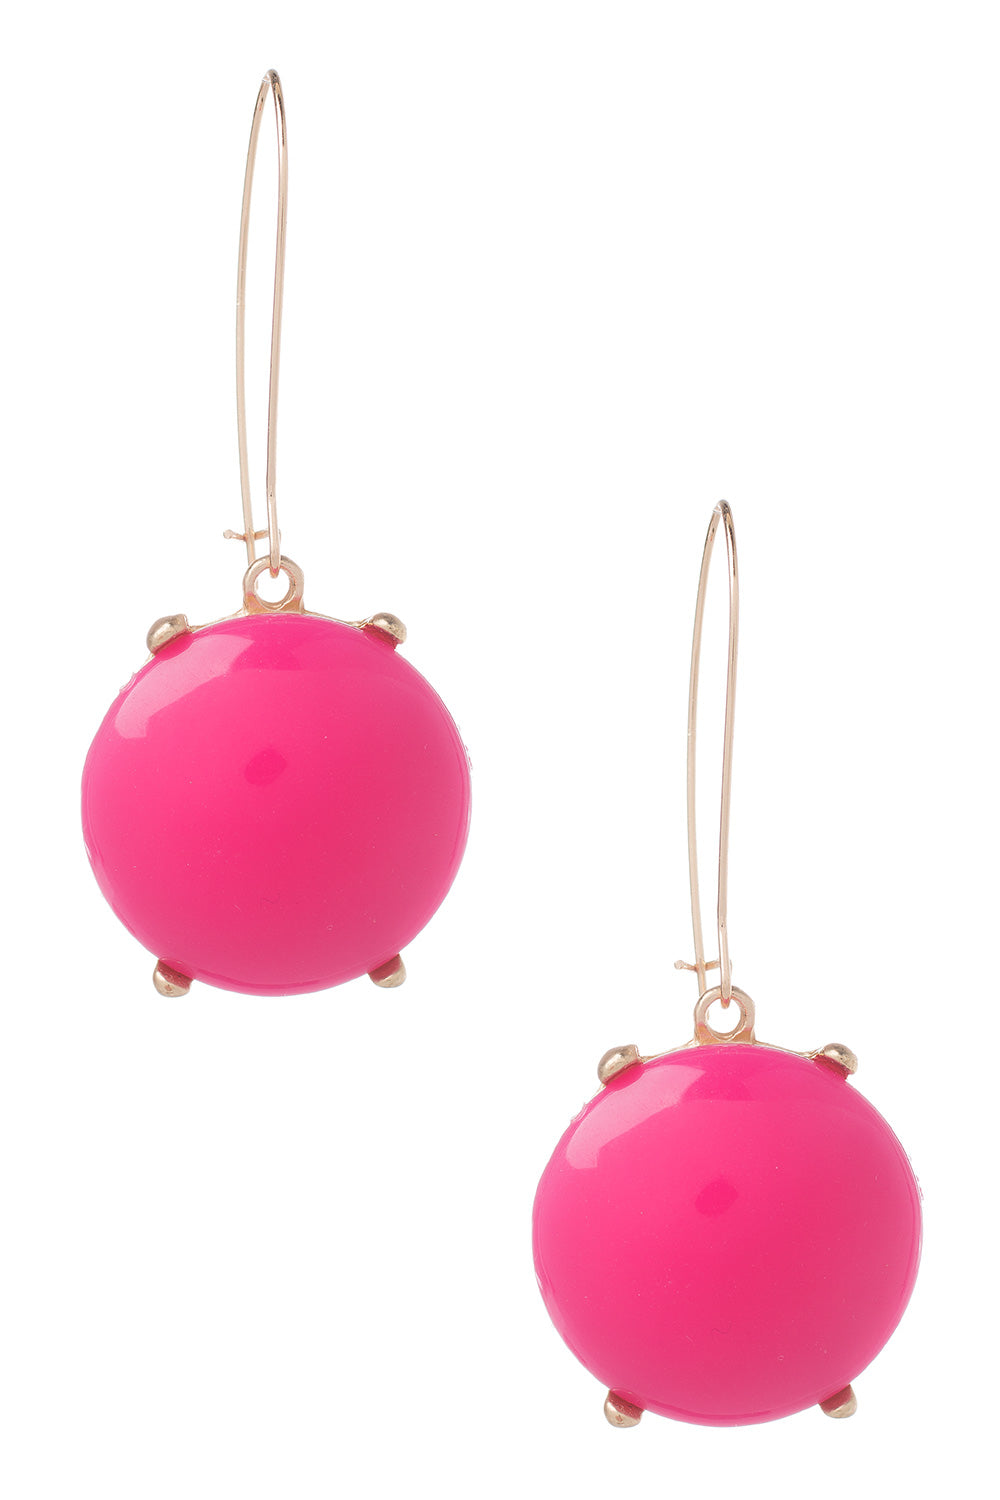 Type 1 Bubble Earrings In Pink